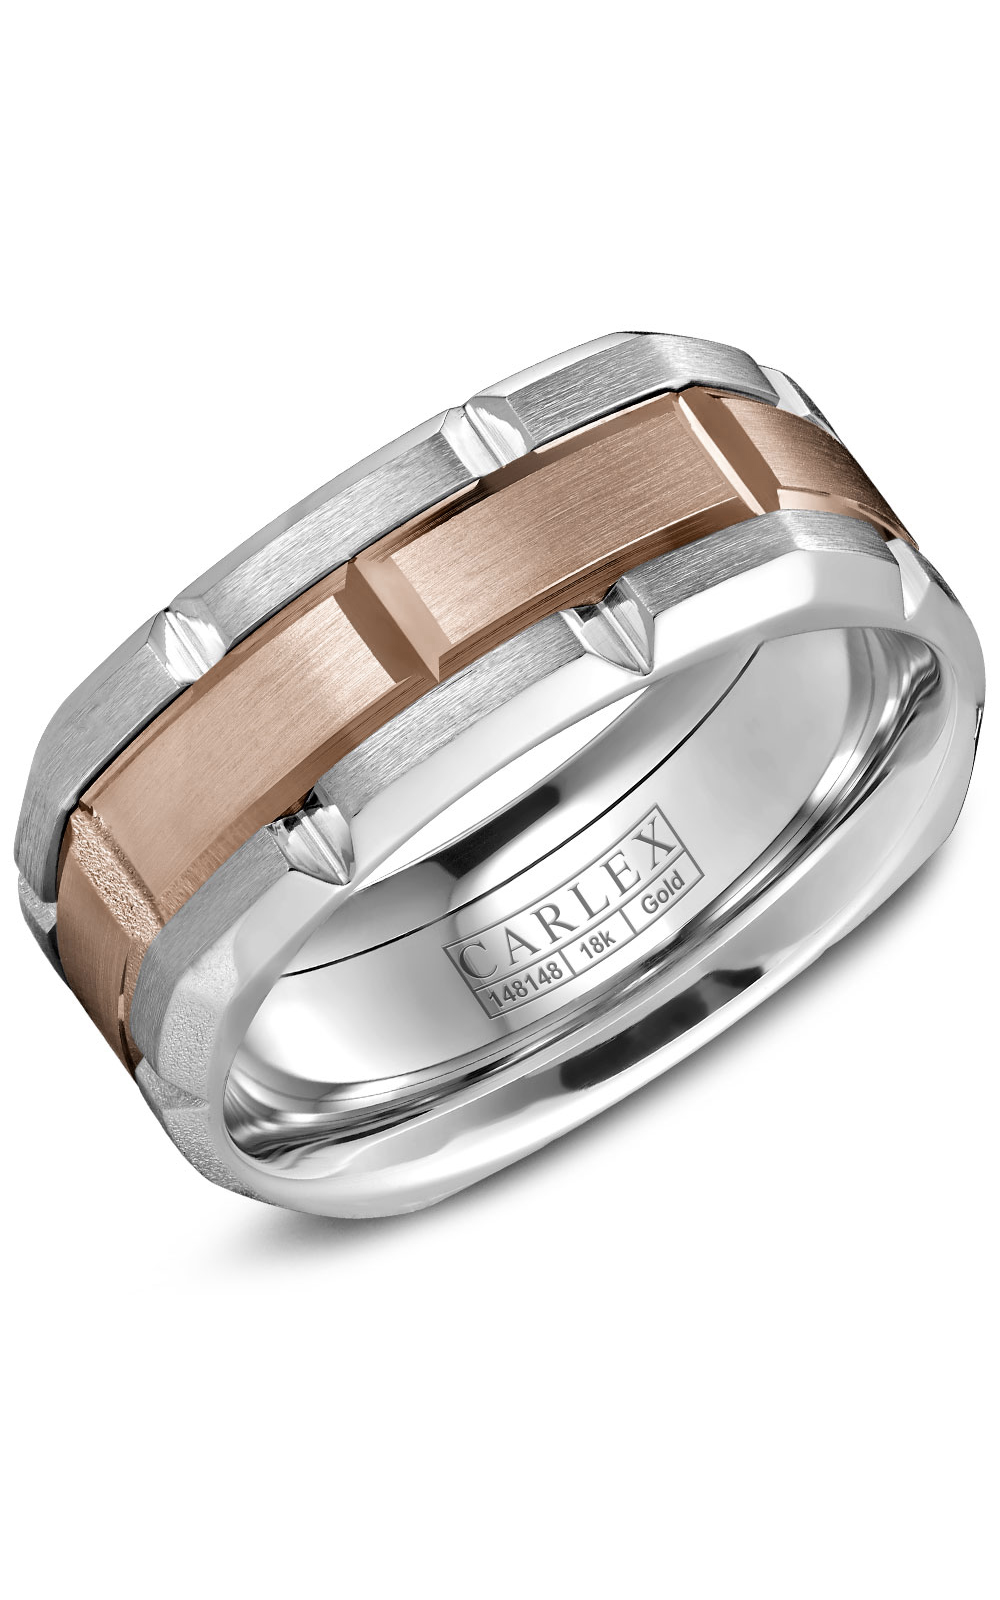 Carlex G1 Men's Wedding Band CX1-0001RW product image